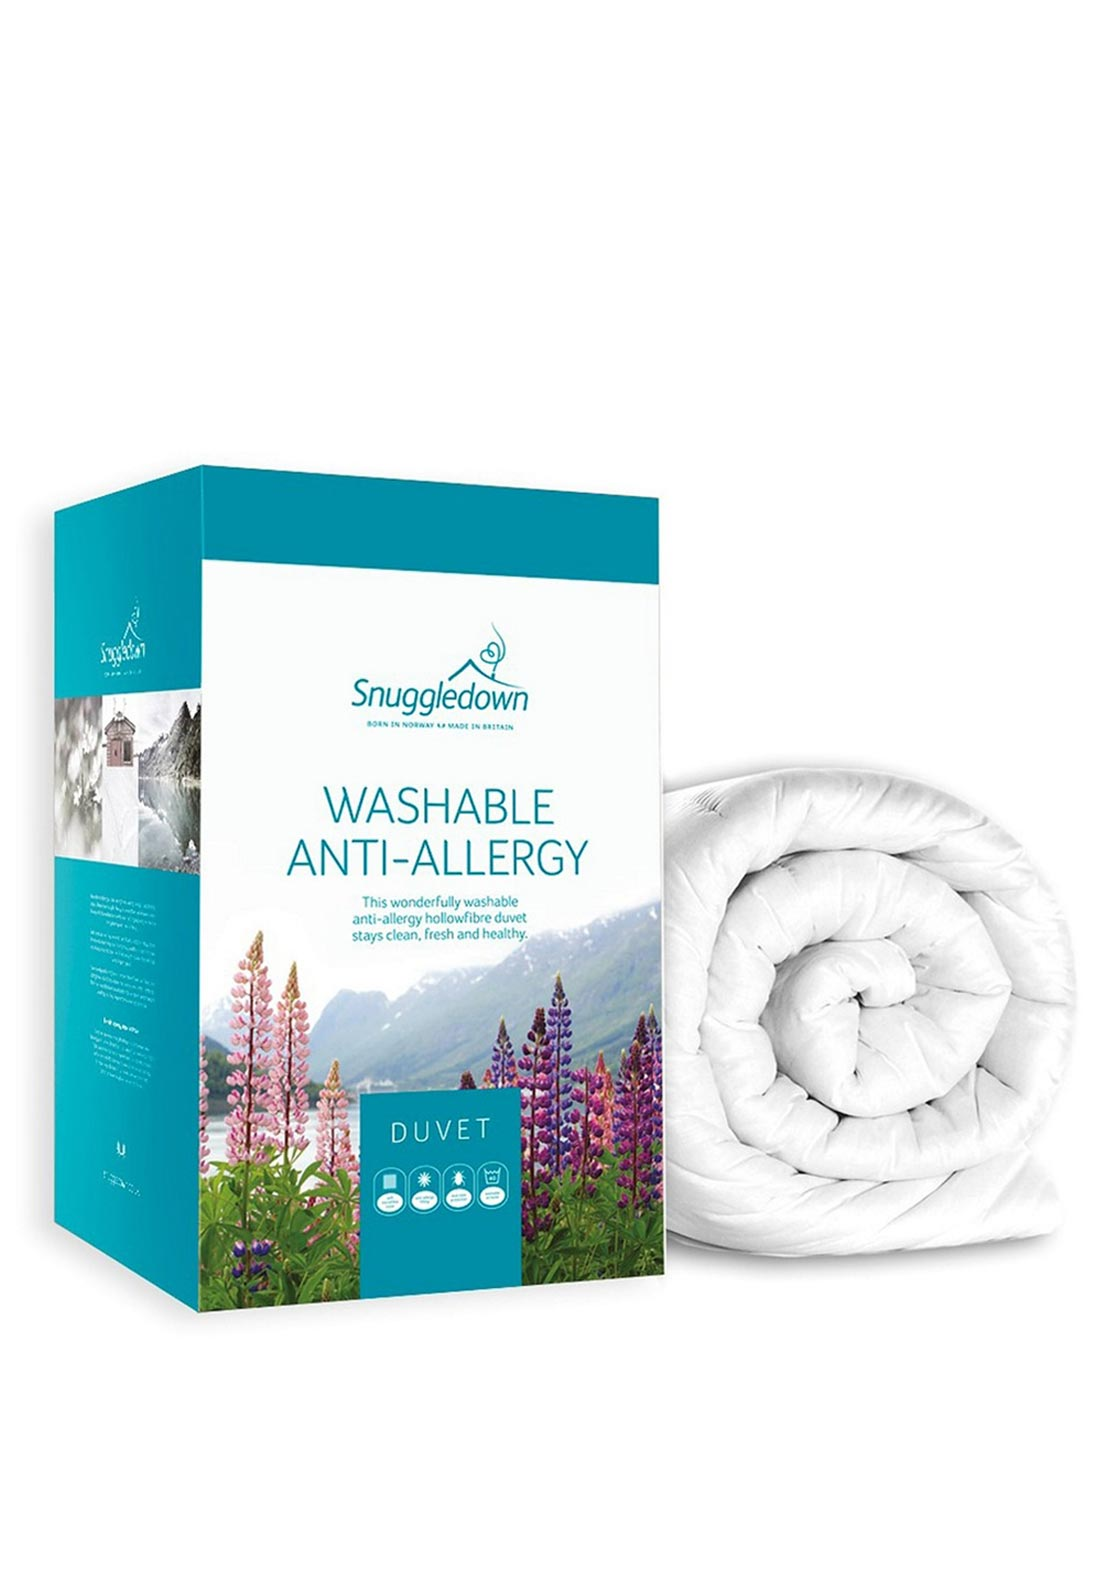 Snuggledown Washable Anti-Allergy Duvet, 4.5 Tog